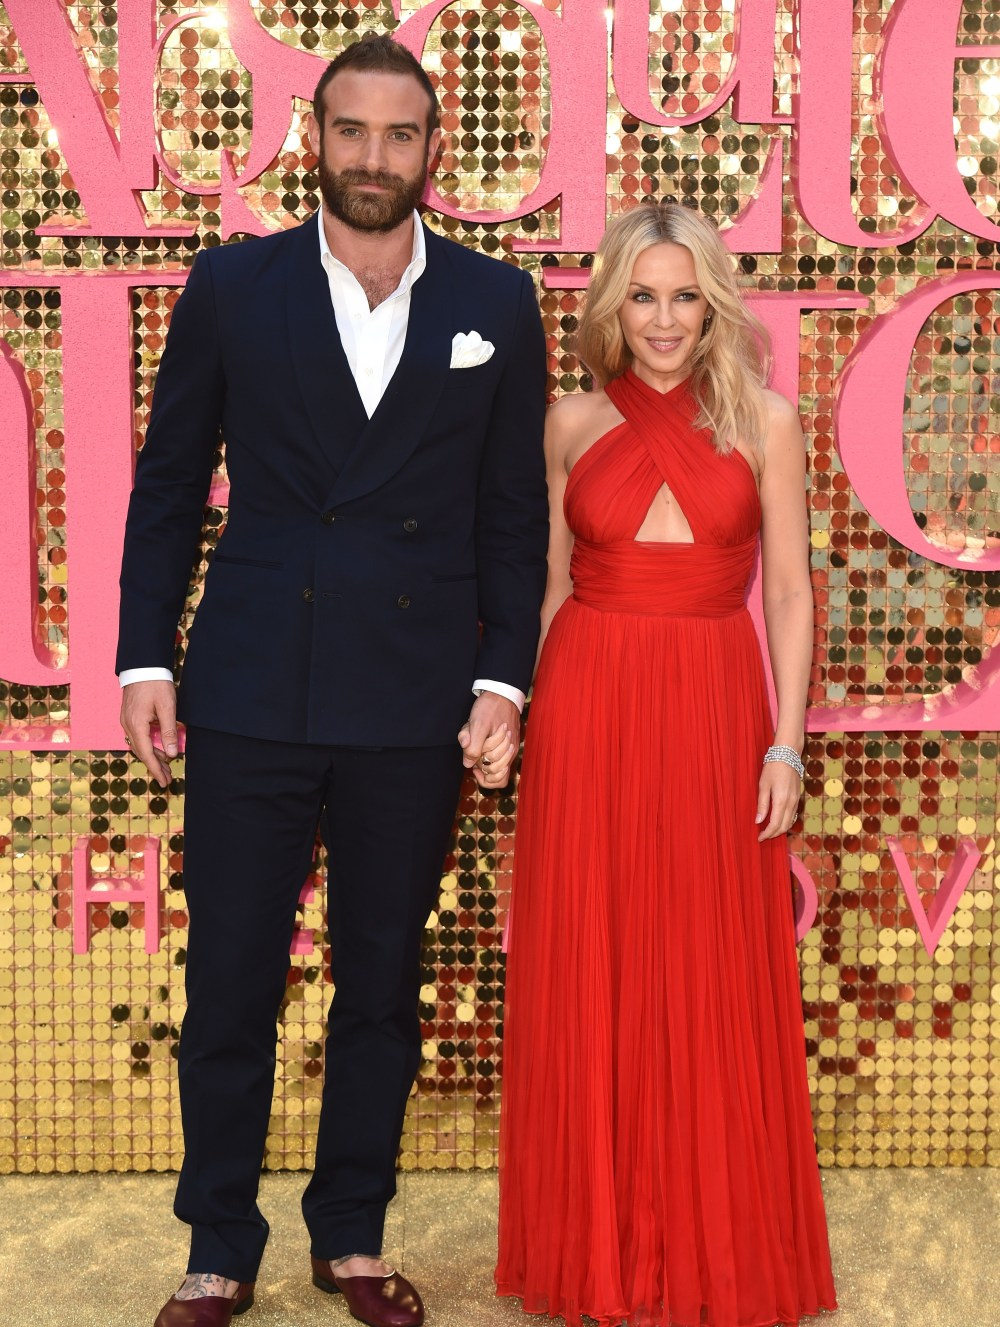 Mandatory Credit: Photo by David Fisher/REX/Shutterstock (5738573gj) Joshua Sasse and Kylie Minogue 'Absolutely Fabulous: The Movie' world film premiere, London, UK - 29 Jun 2016